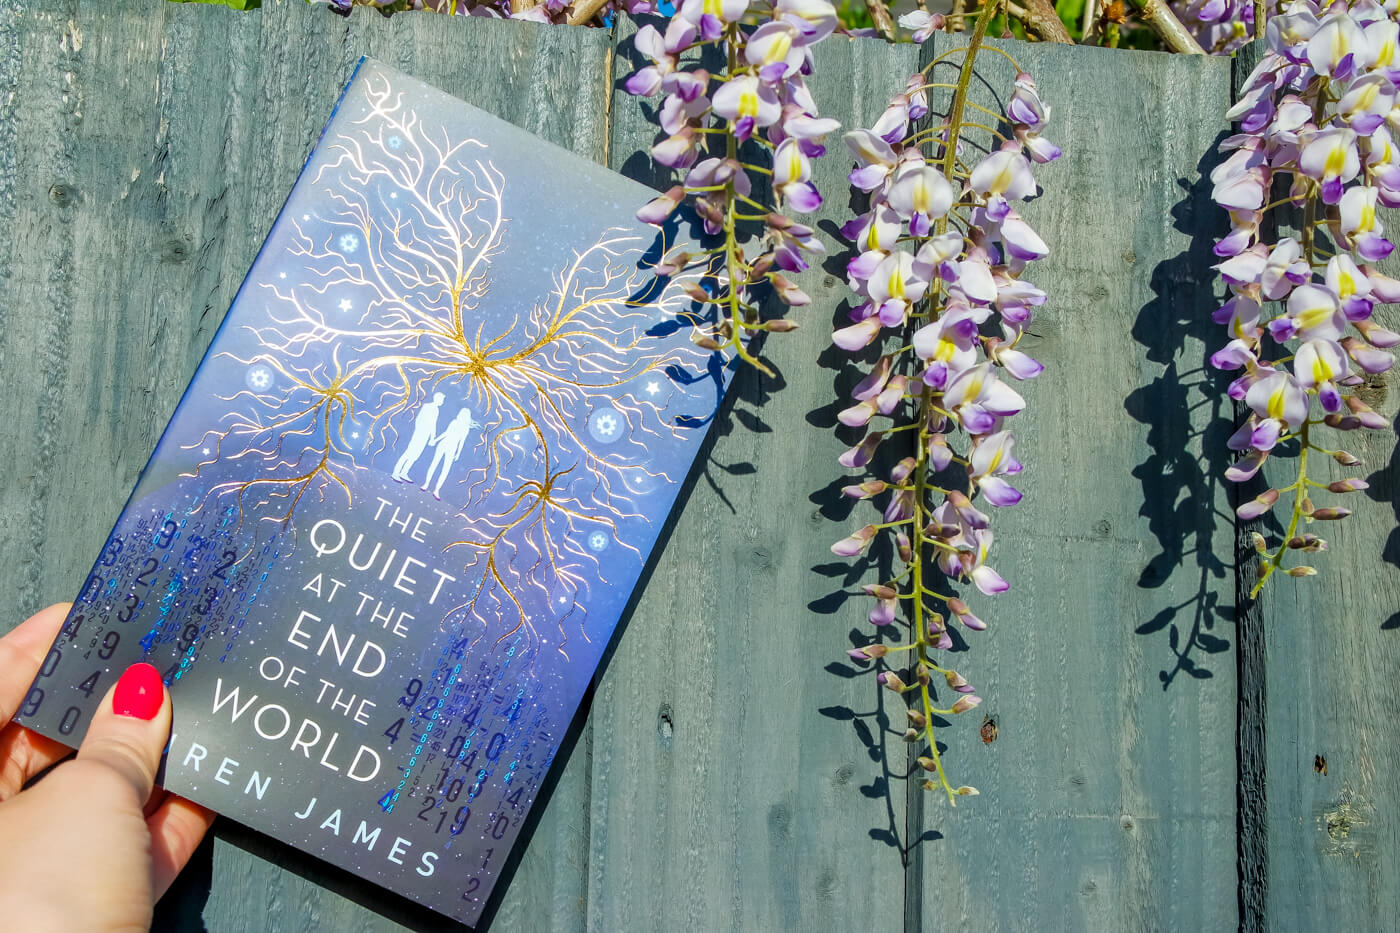 The quiet at the End of the World book cover in the garden